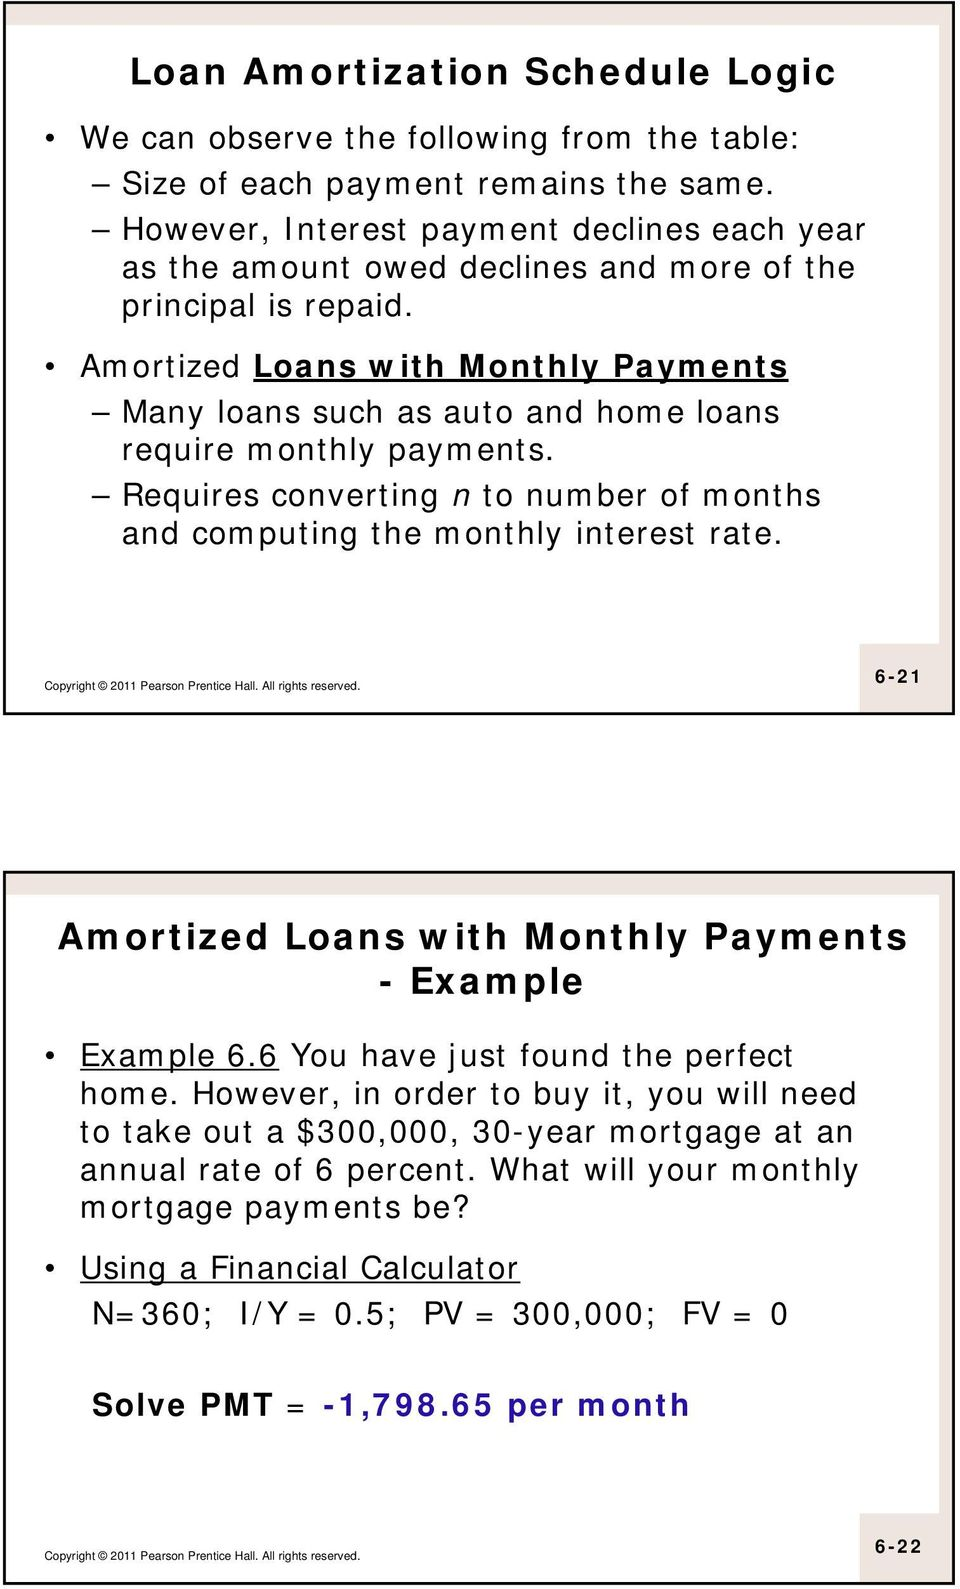 Amortized Loans with Monthly Payments Many loans such as auto and home loans require monthly payments. Requires converting n to number of months and computing the monthly interest rate.